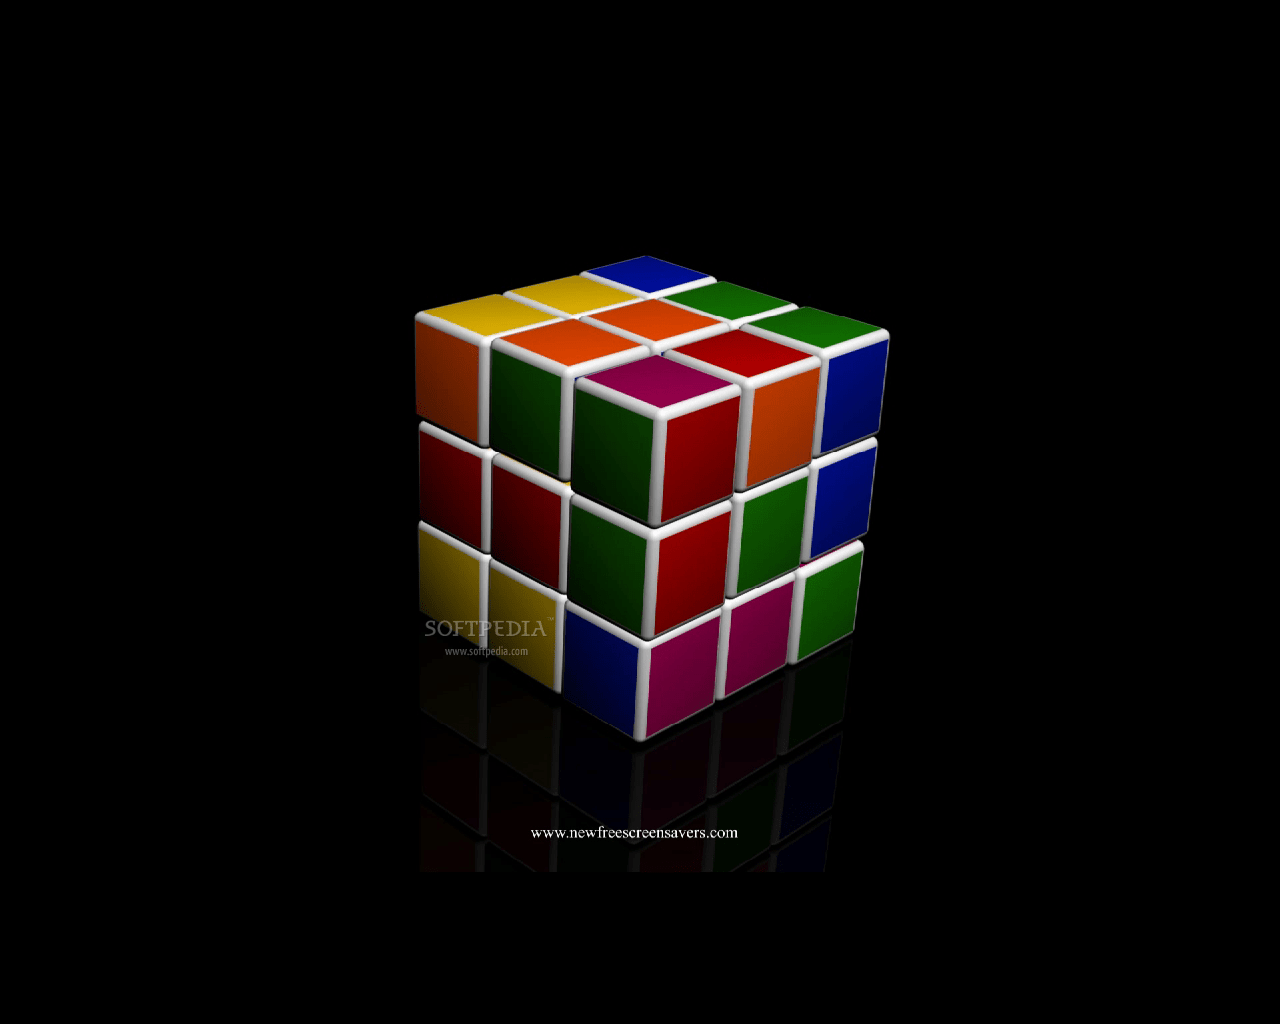 3d Cube Wallpaper Apk Download Nfsrubikscubeanimation